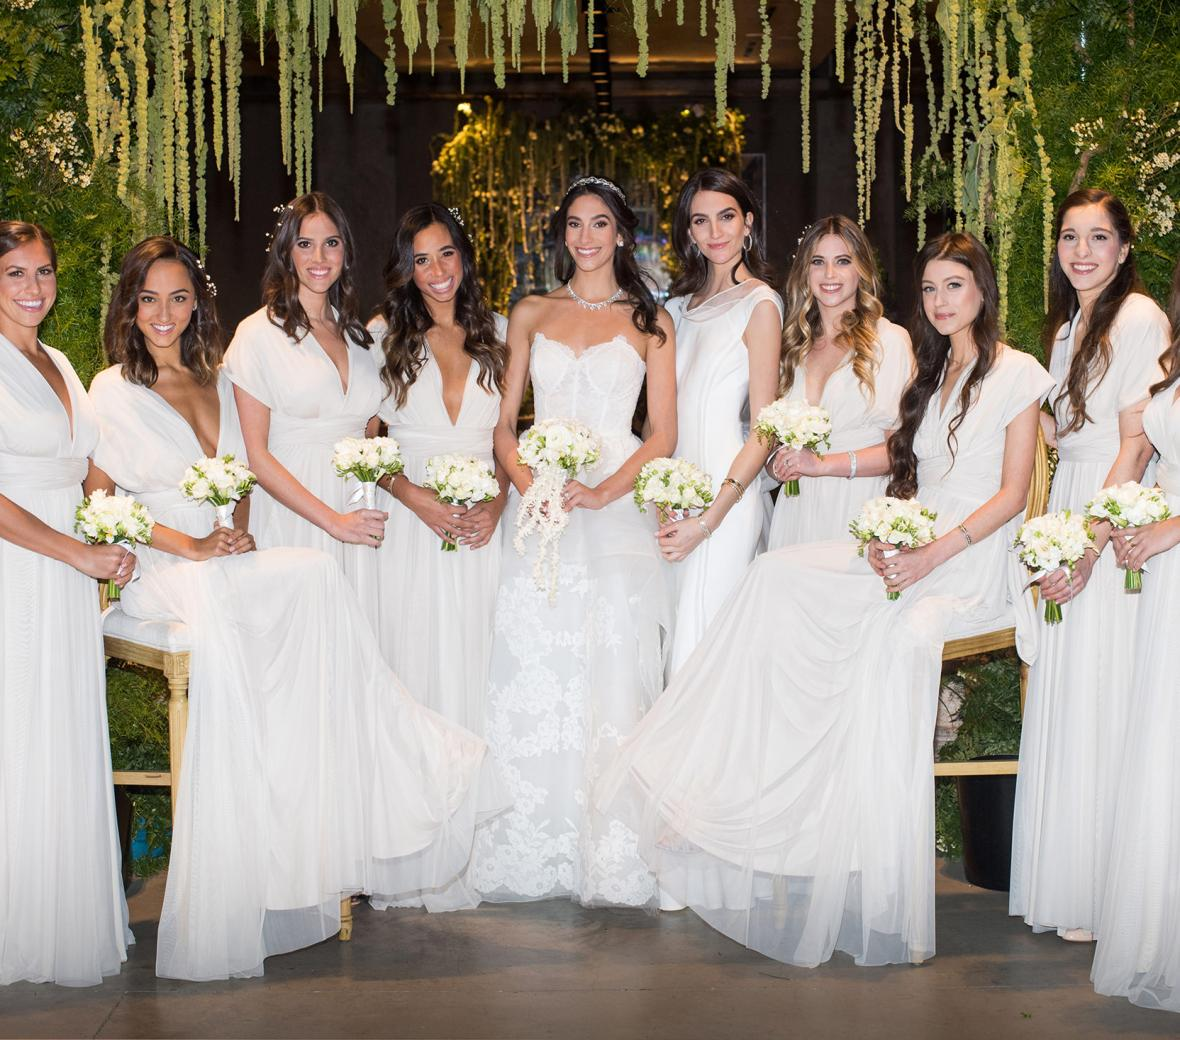 A bride and a row of bridesmaids all wearing long white dresses.